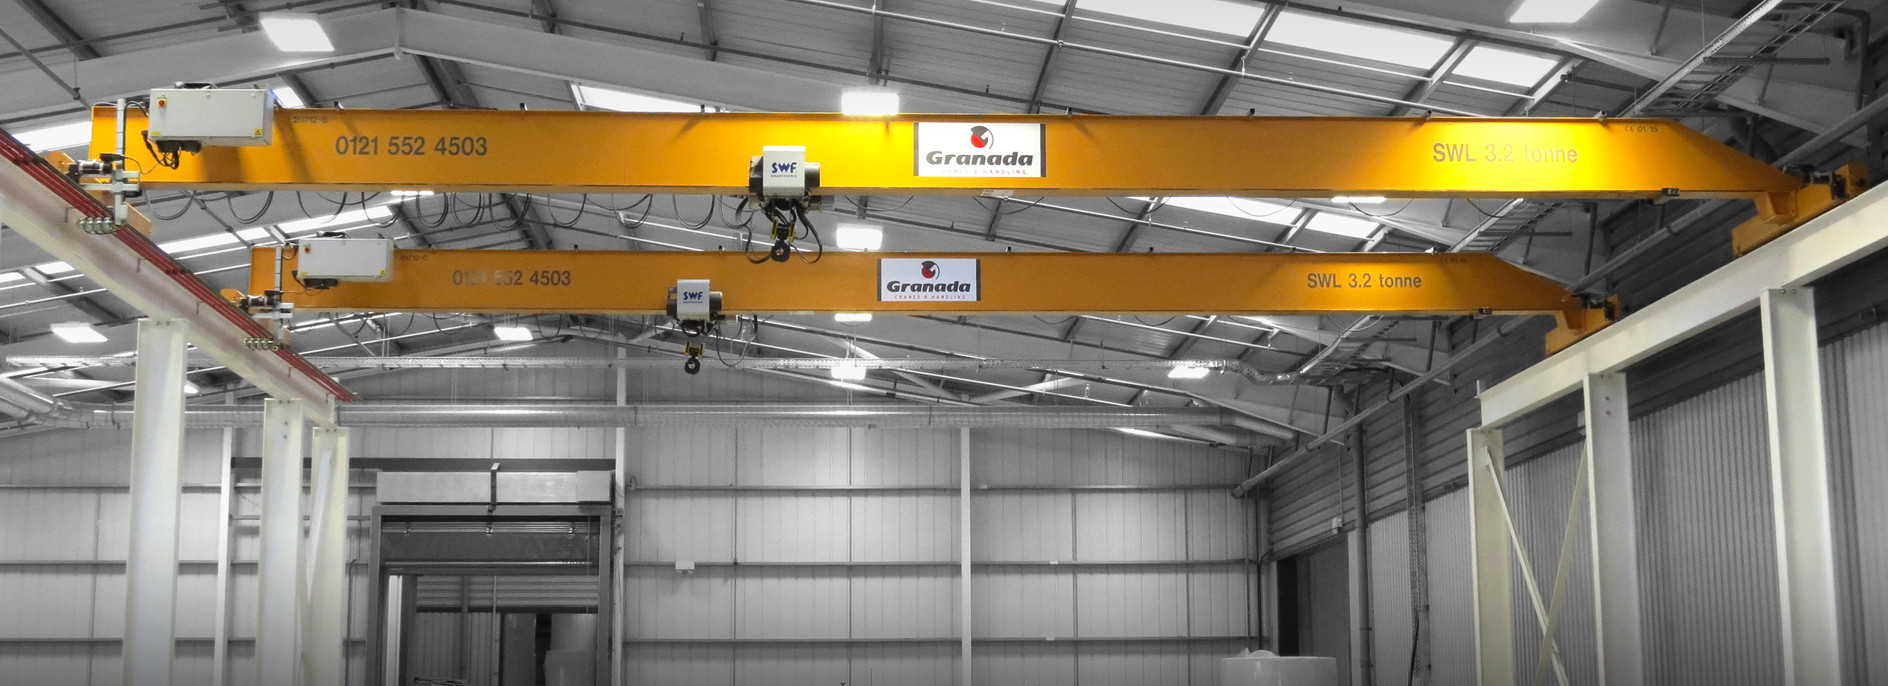 Paper industry lifting solution case study